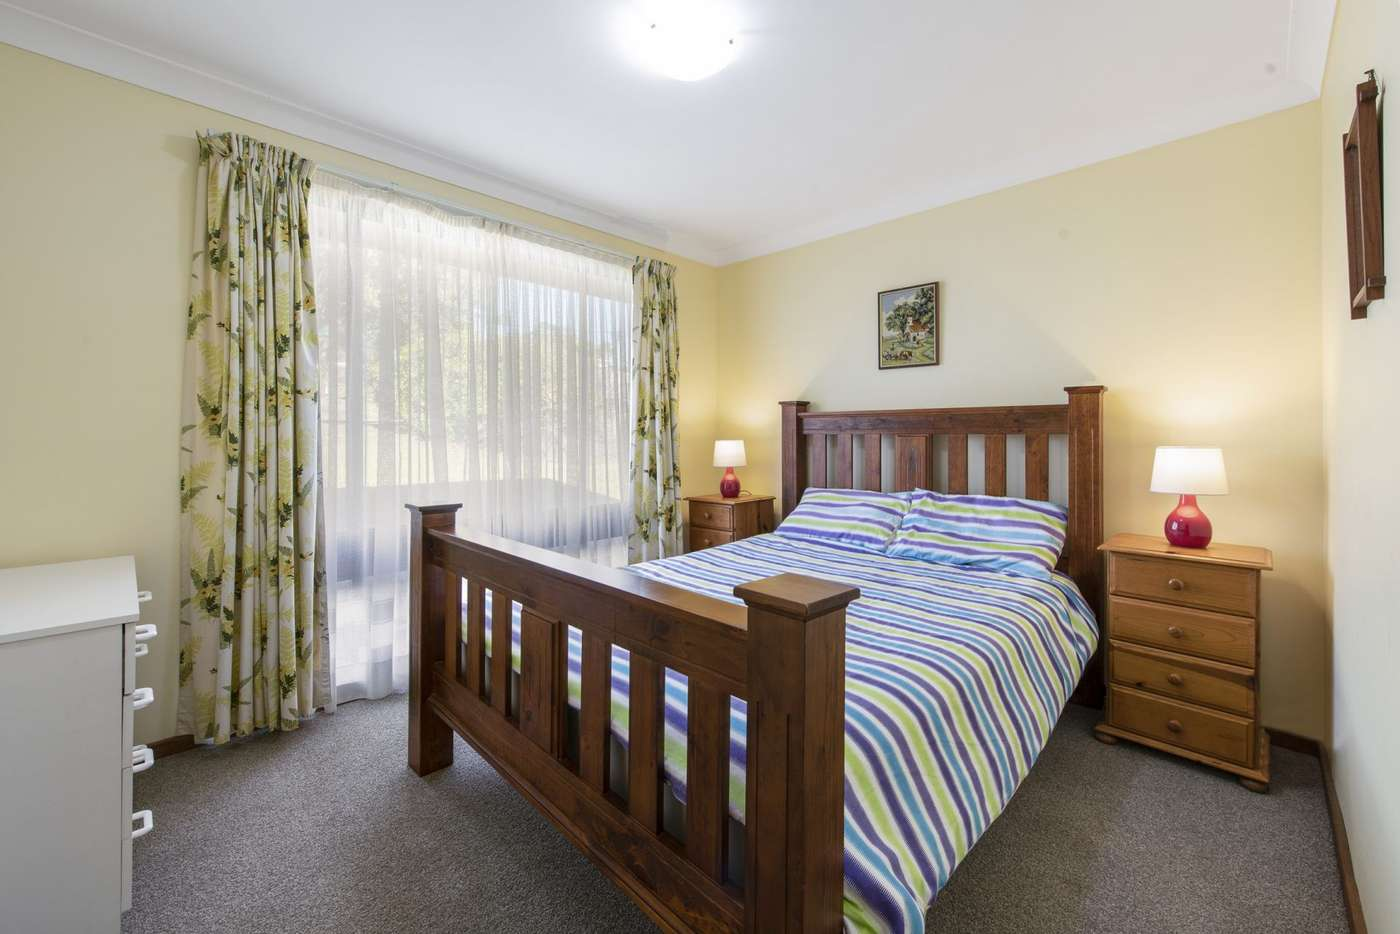 Sixth view of Homely house listing, 29 Buckland Street, Mollymook NSW 2539